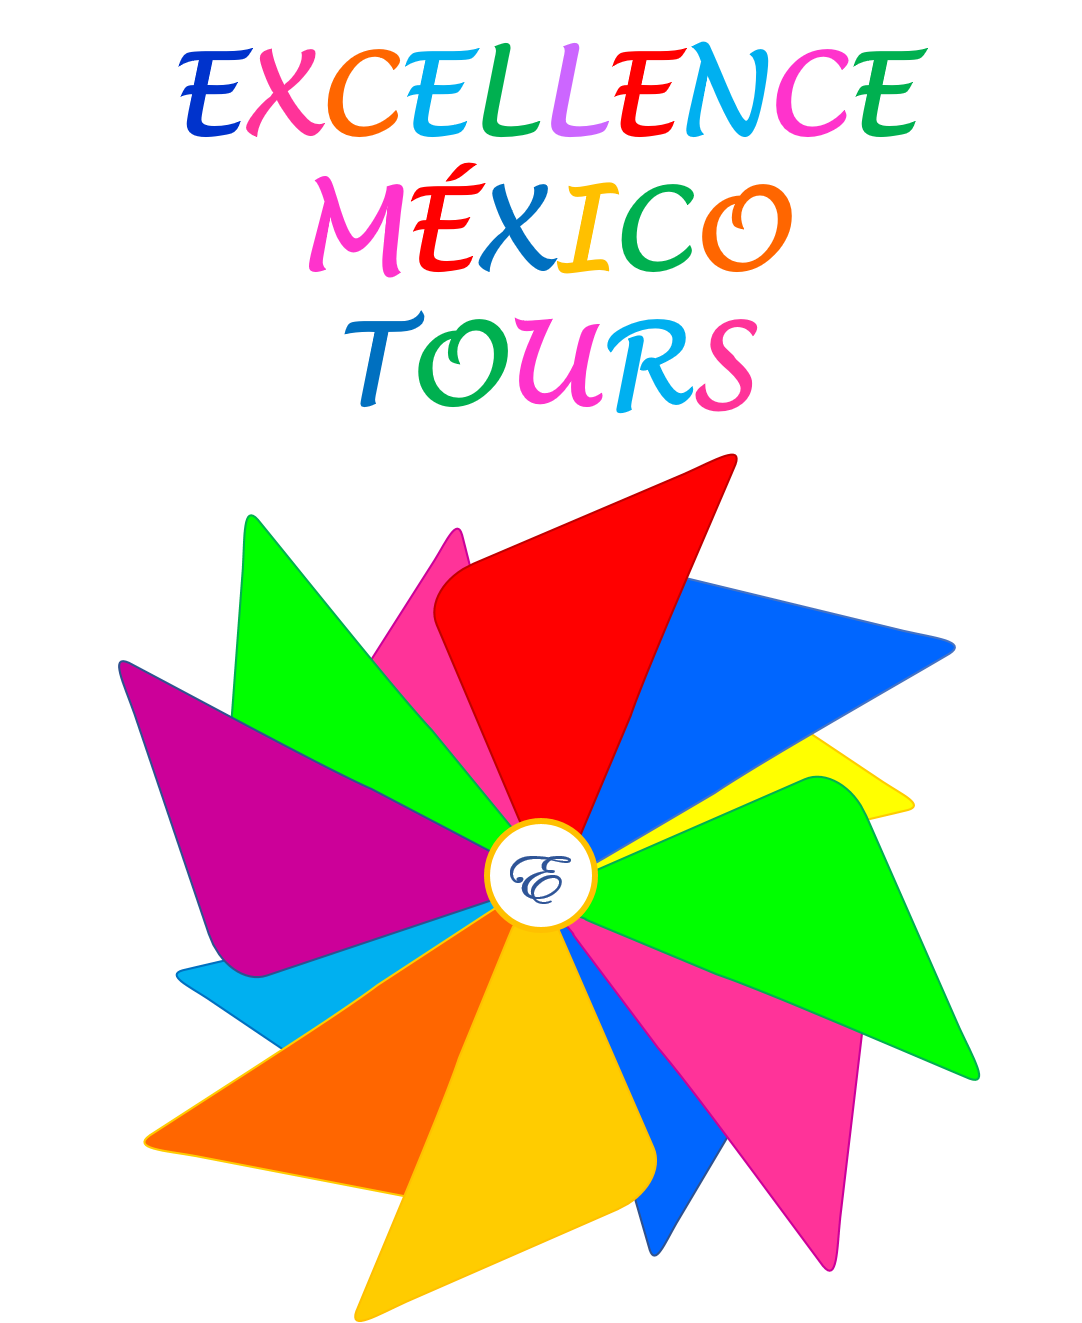 Excellence Mexico Tours